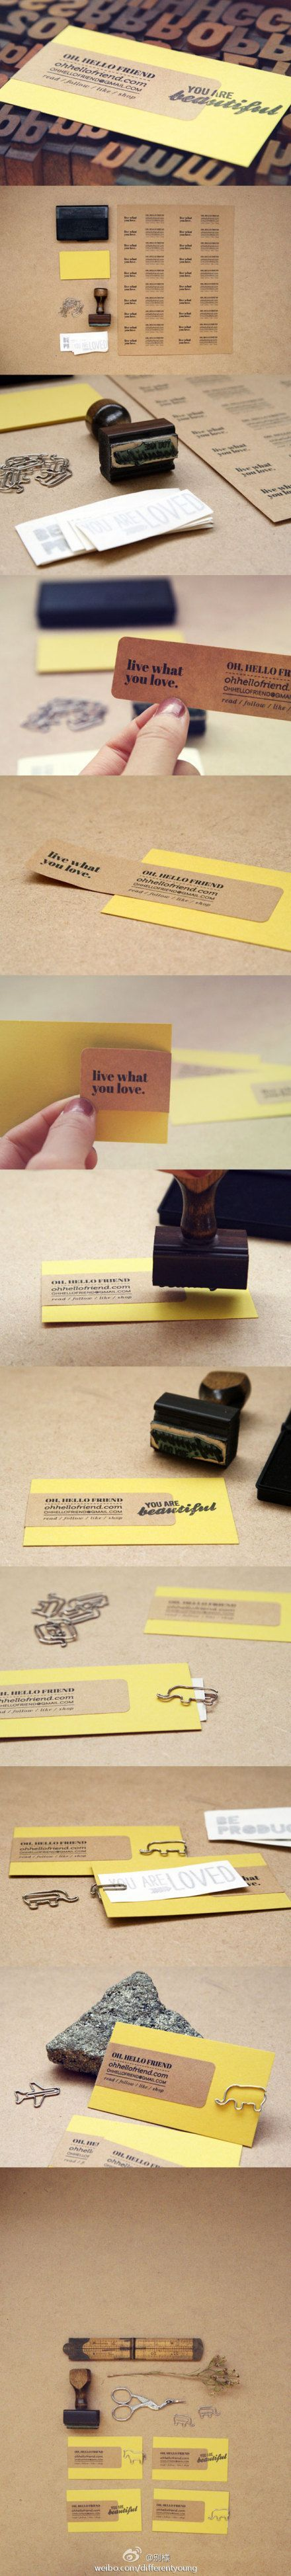 68 best Business Cards images on Pinterest | Business card design ...